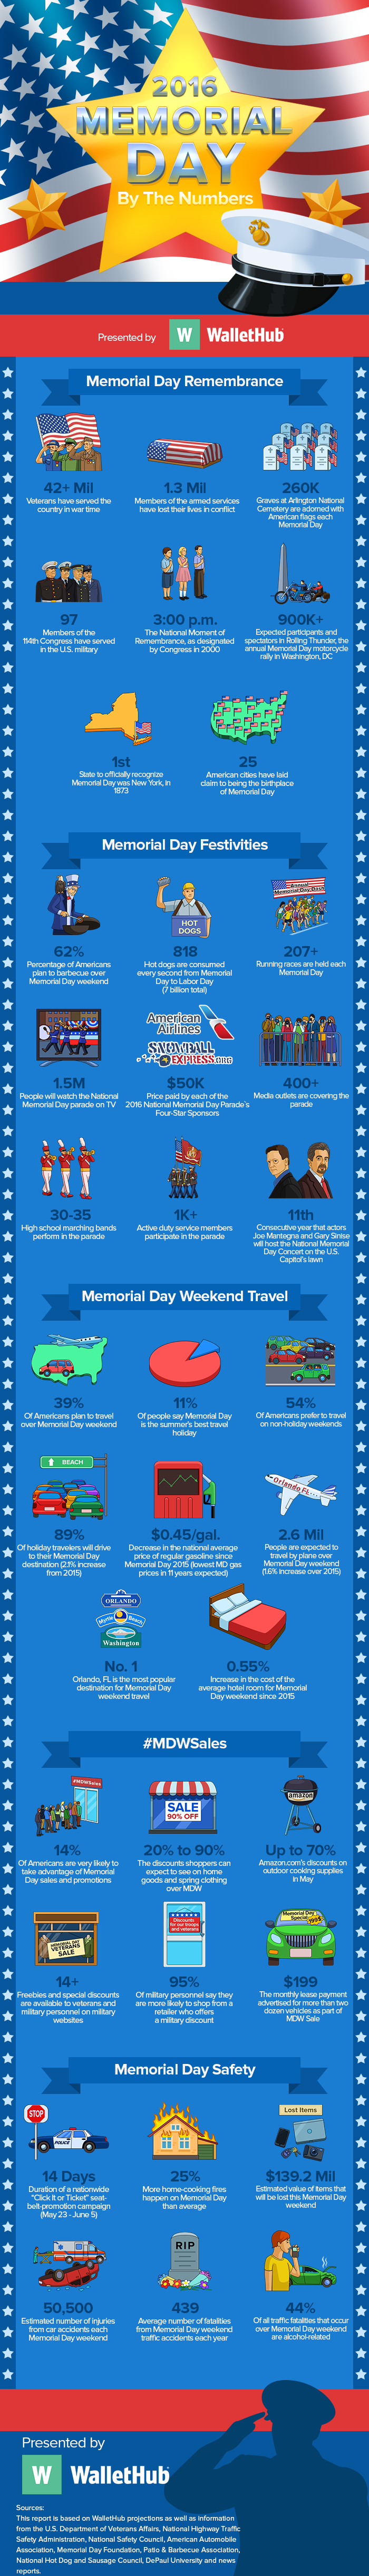 Memorial Day 2016 By The Numbers